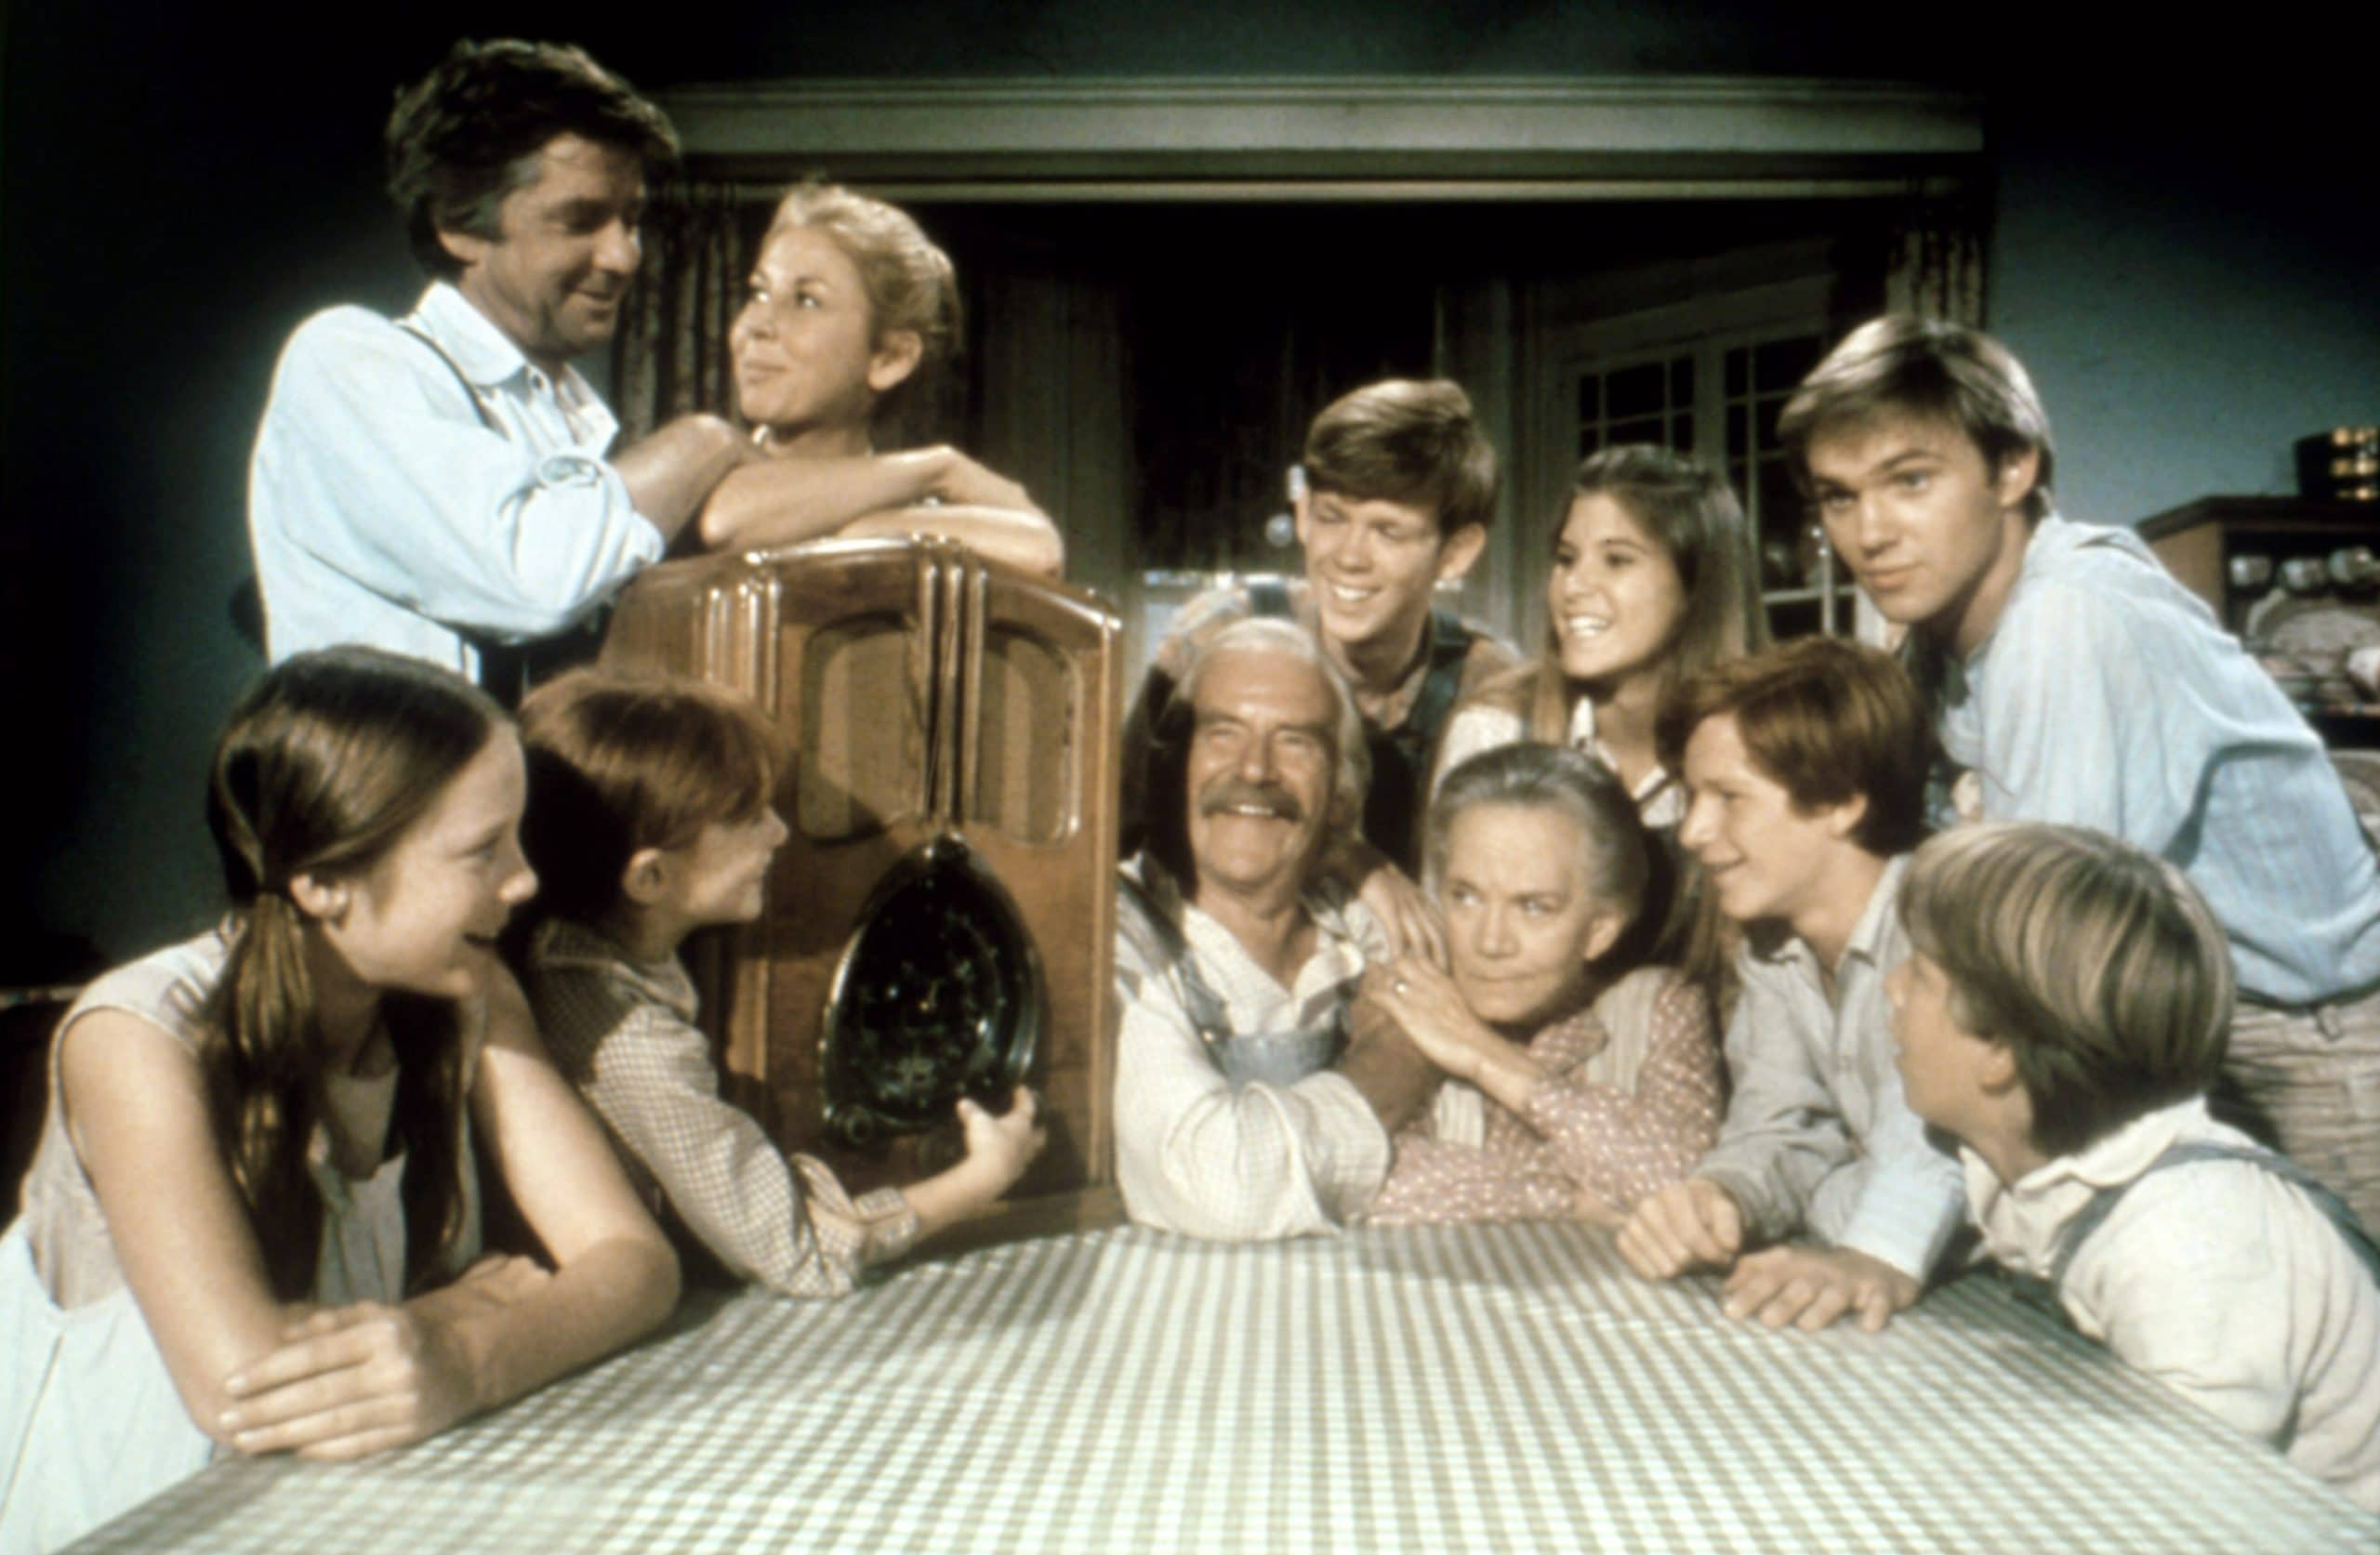 'The Waltons' Michael Learned, Richard Thomas, And More To Reunite On 'Stars In The House'